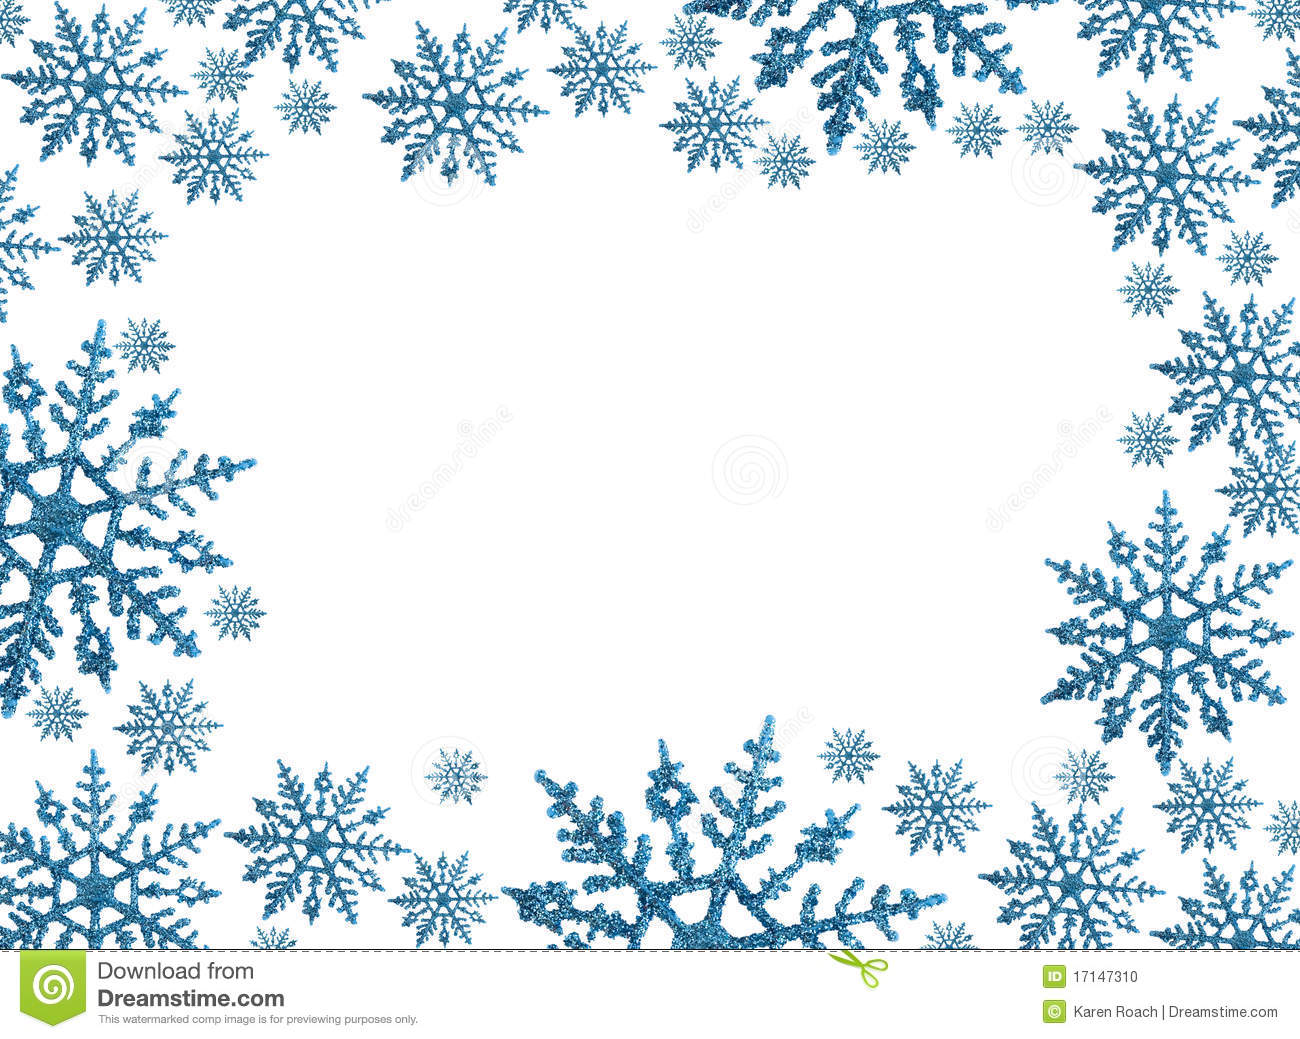 Snowflake border with white background, winter time.